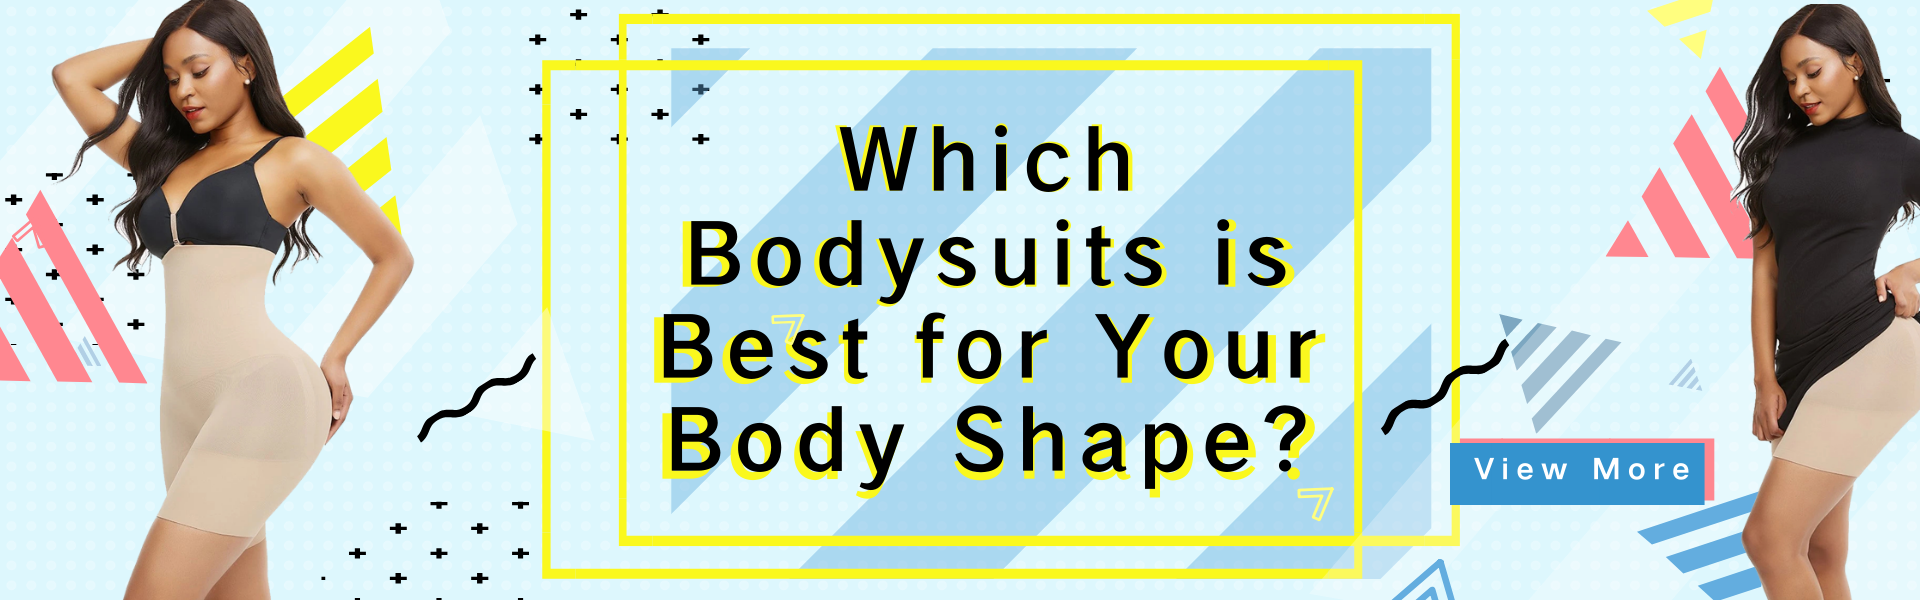 Which Bodysuits is Best for Your Body Shape?